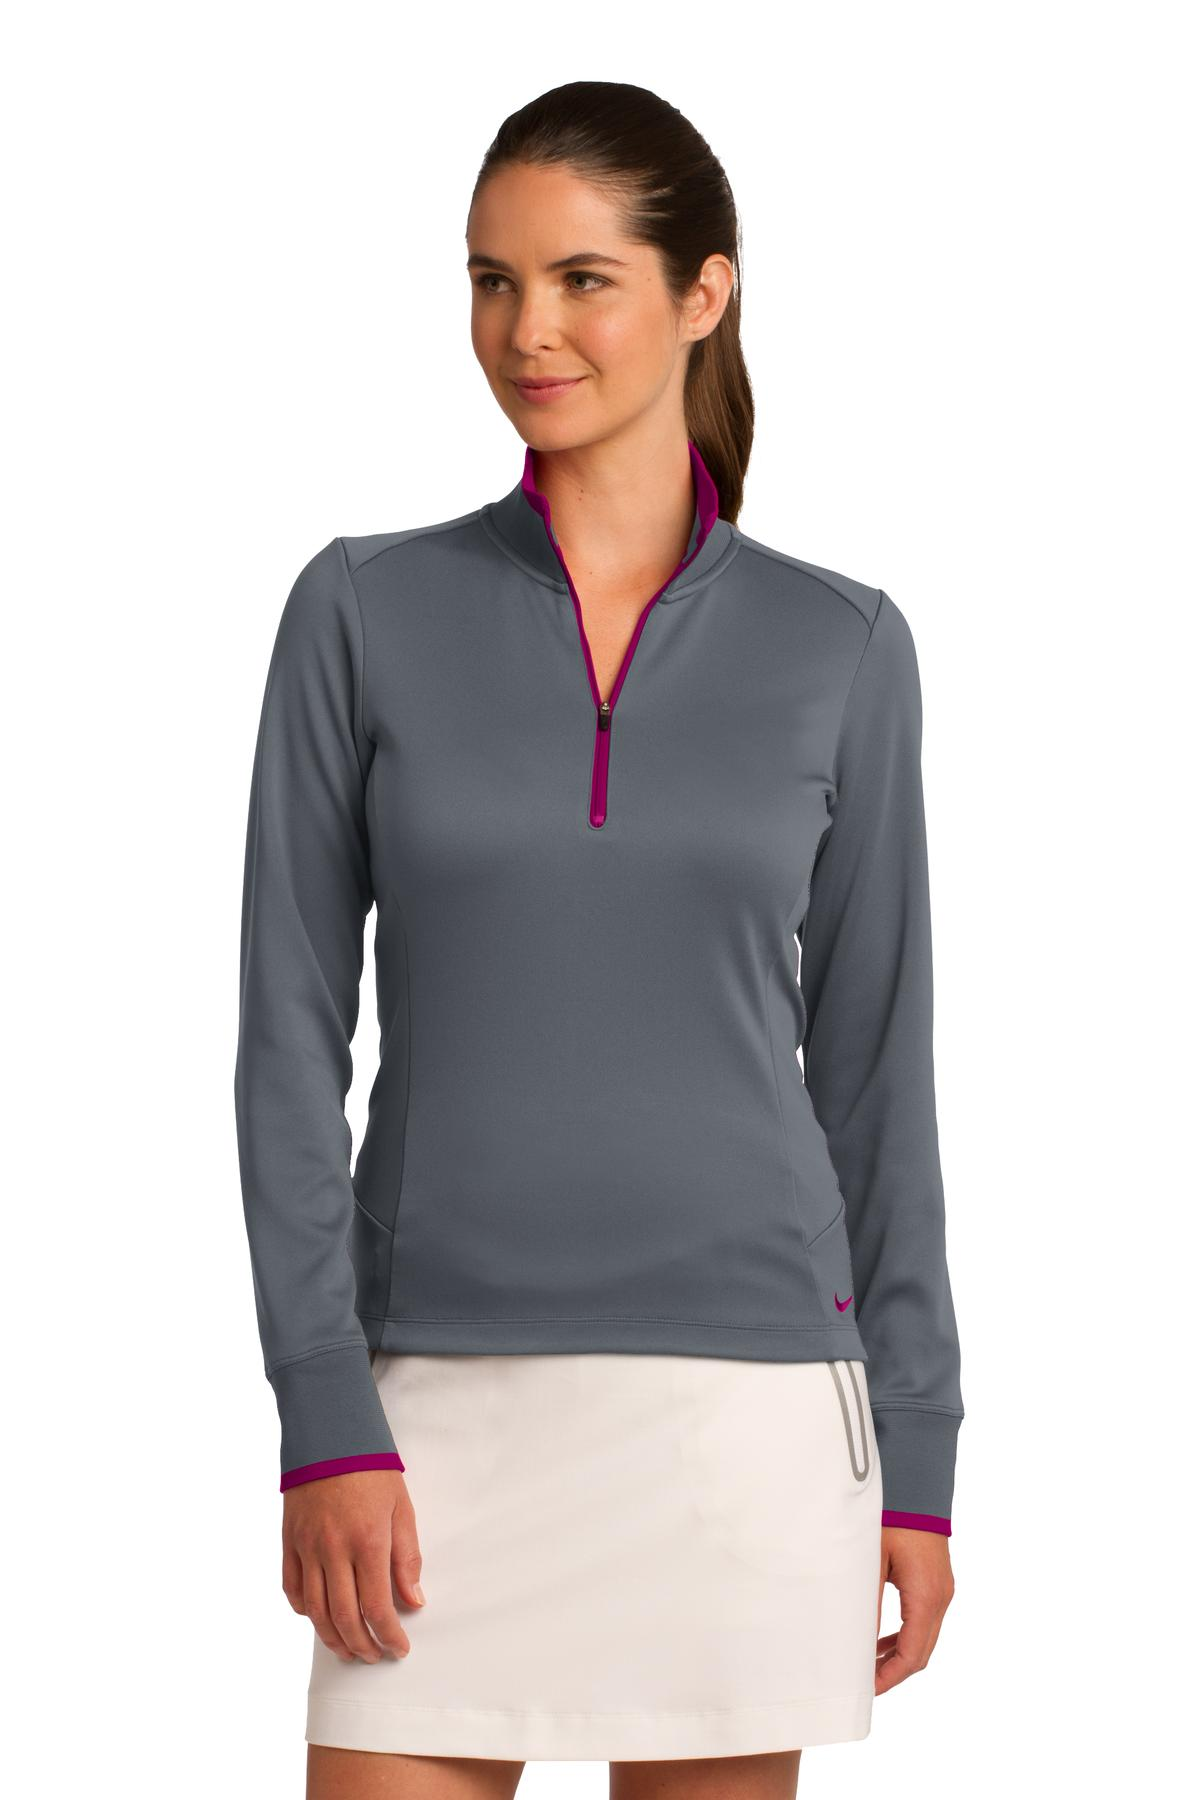 Outerwear-Golf-11